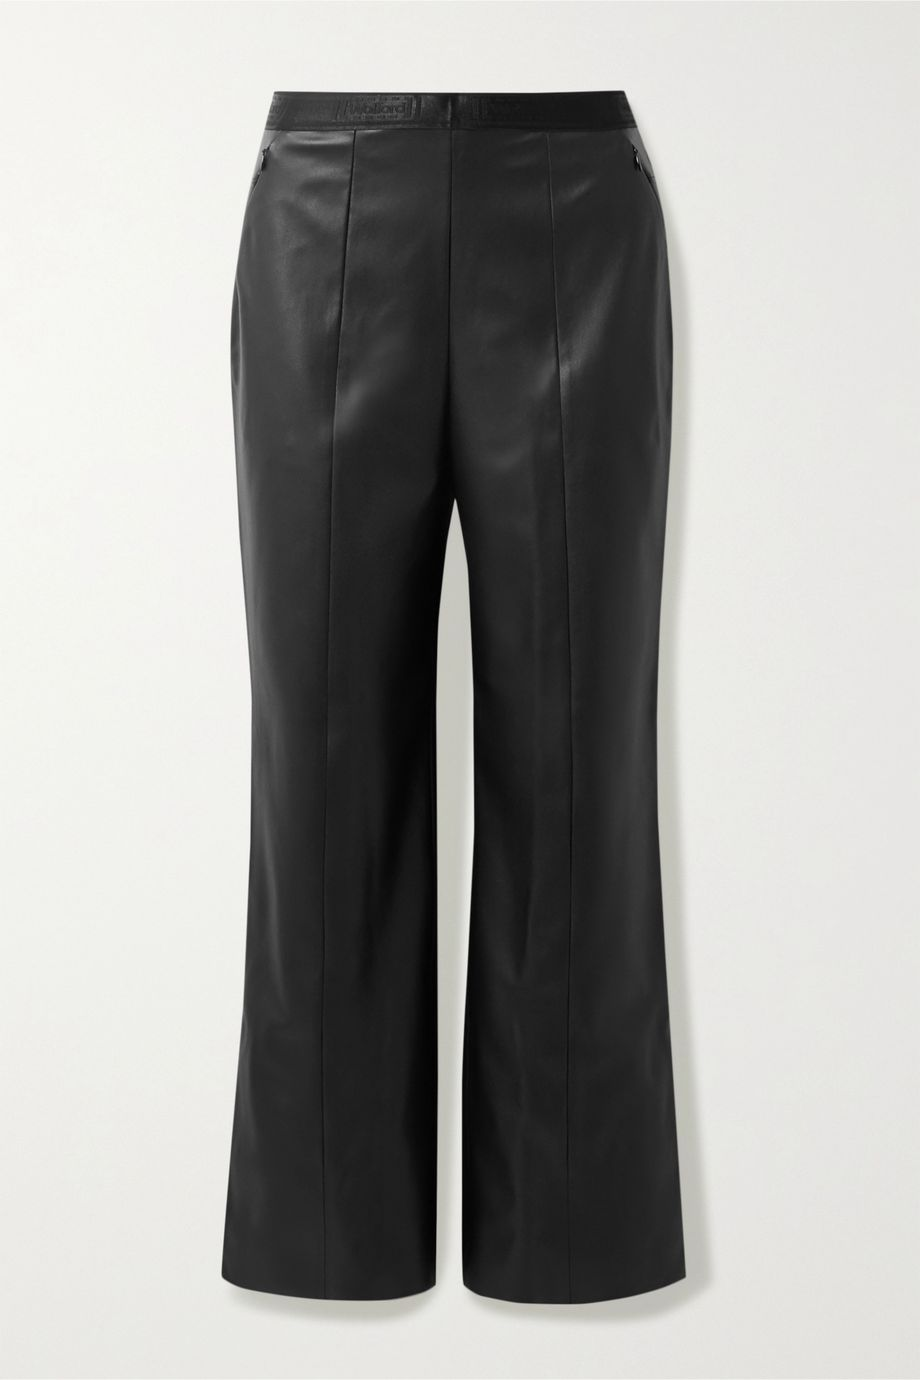 Wolford Estella faux leather straight-leg pants